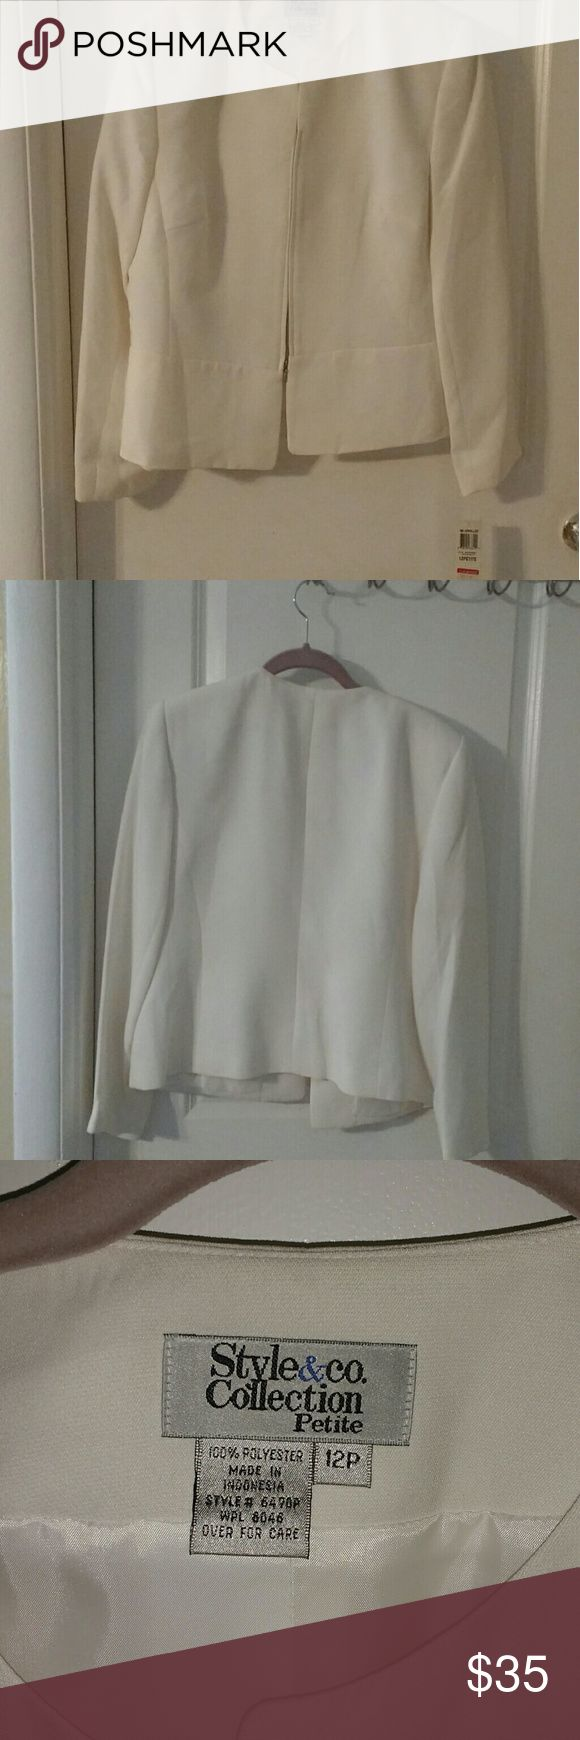 Style & Co Dressy Jacket NWT Off White Jacket, New with Tags, kept in suit bag for protection Style & Co Jackets & Coats Blazers